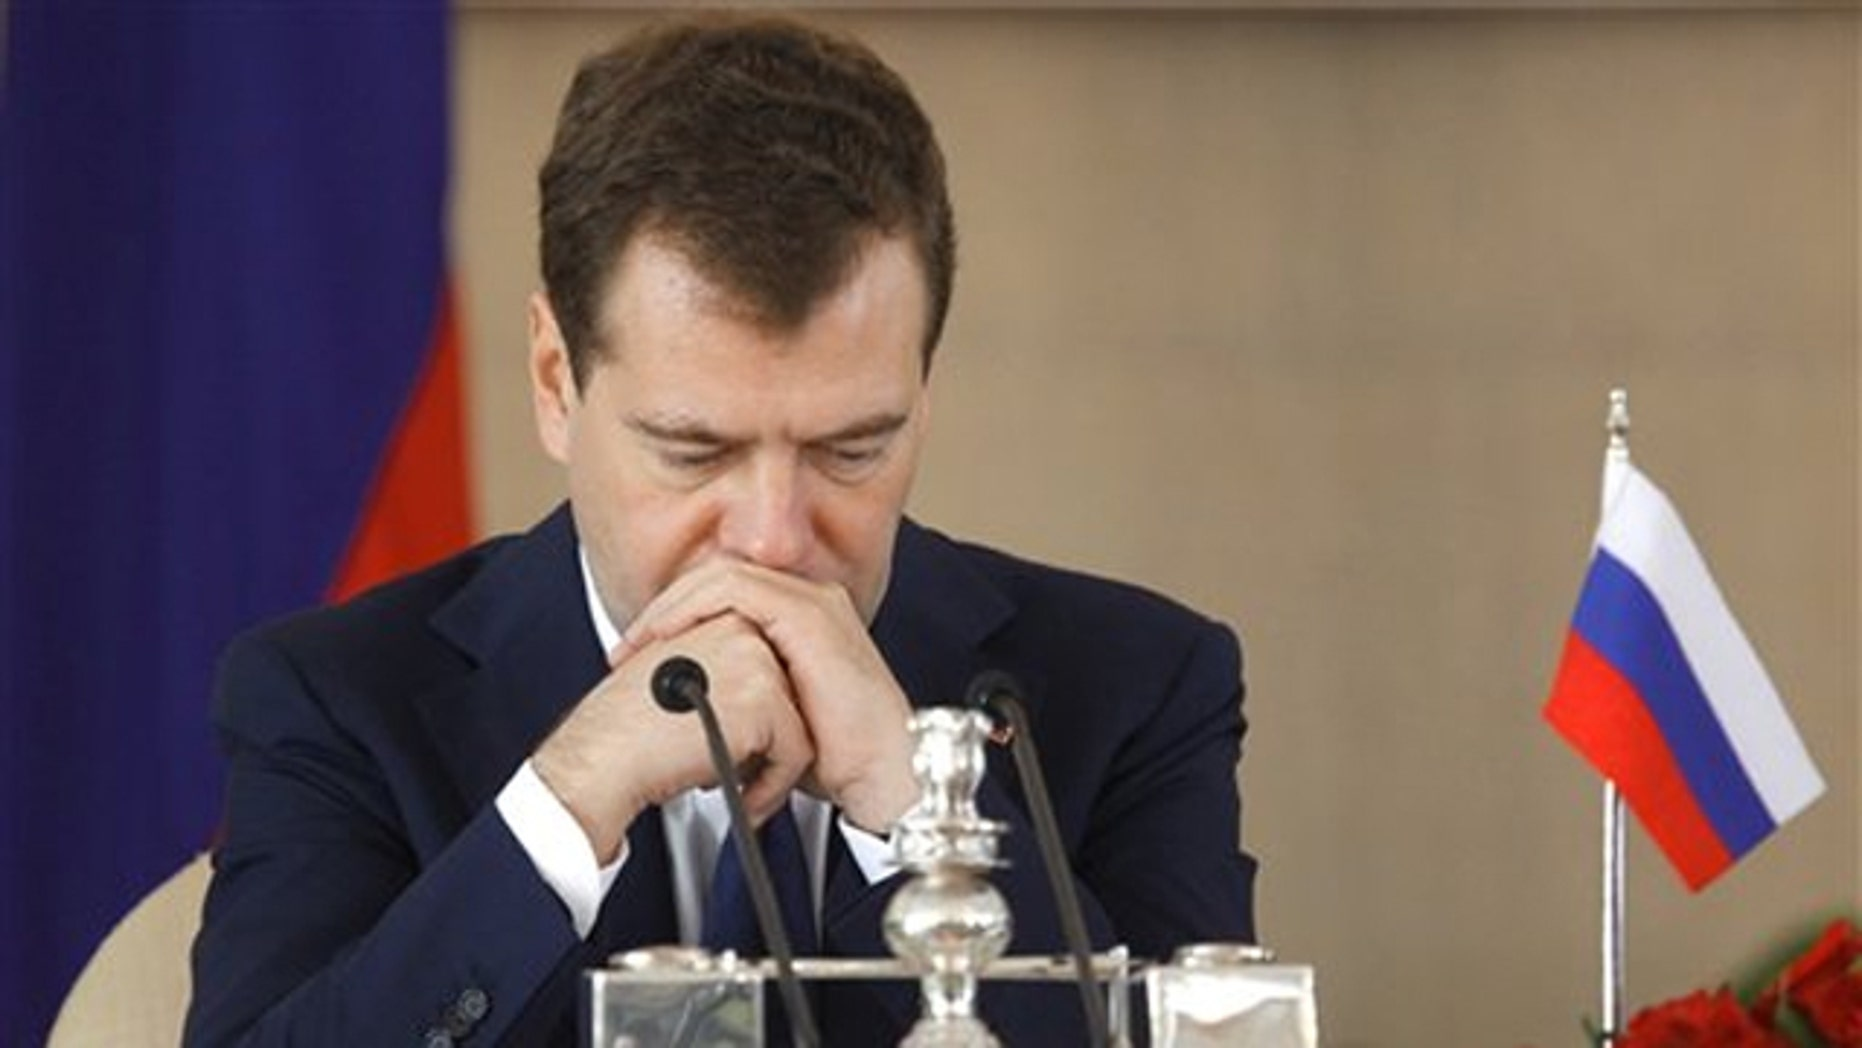 Russian President Dmitry Medvedev takes part in a news conference in New Delhi, India, Dec. 21.